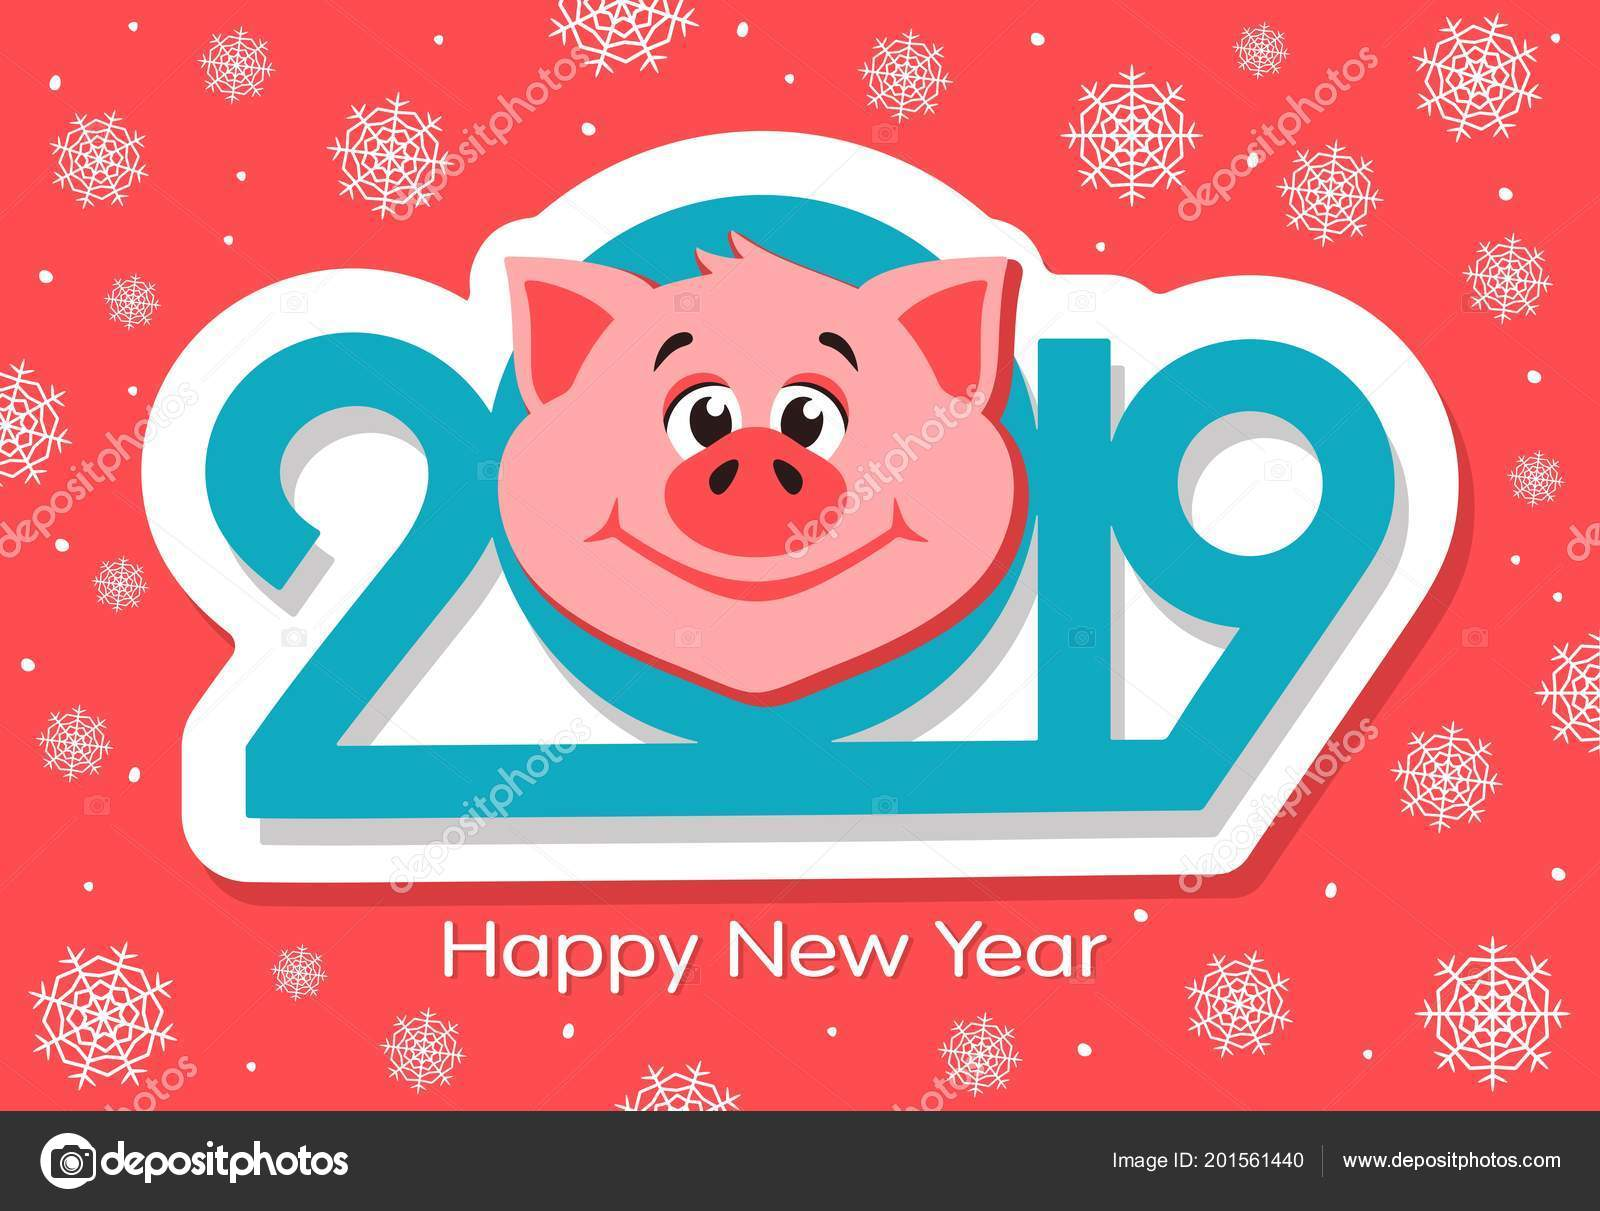 Happy New Year Greeting Card Design Cartoon Pigs Face Pink Stock